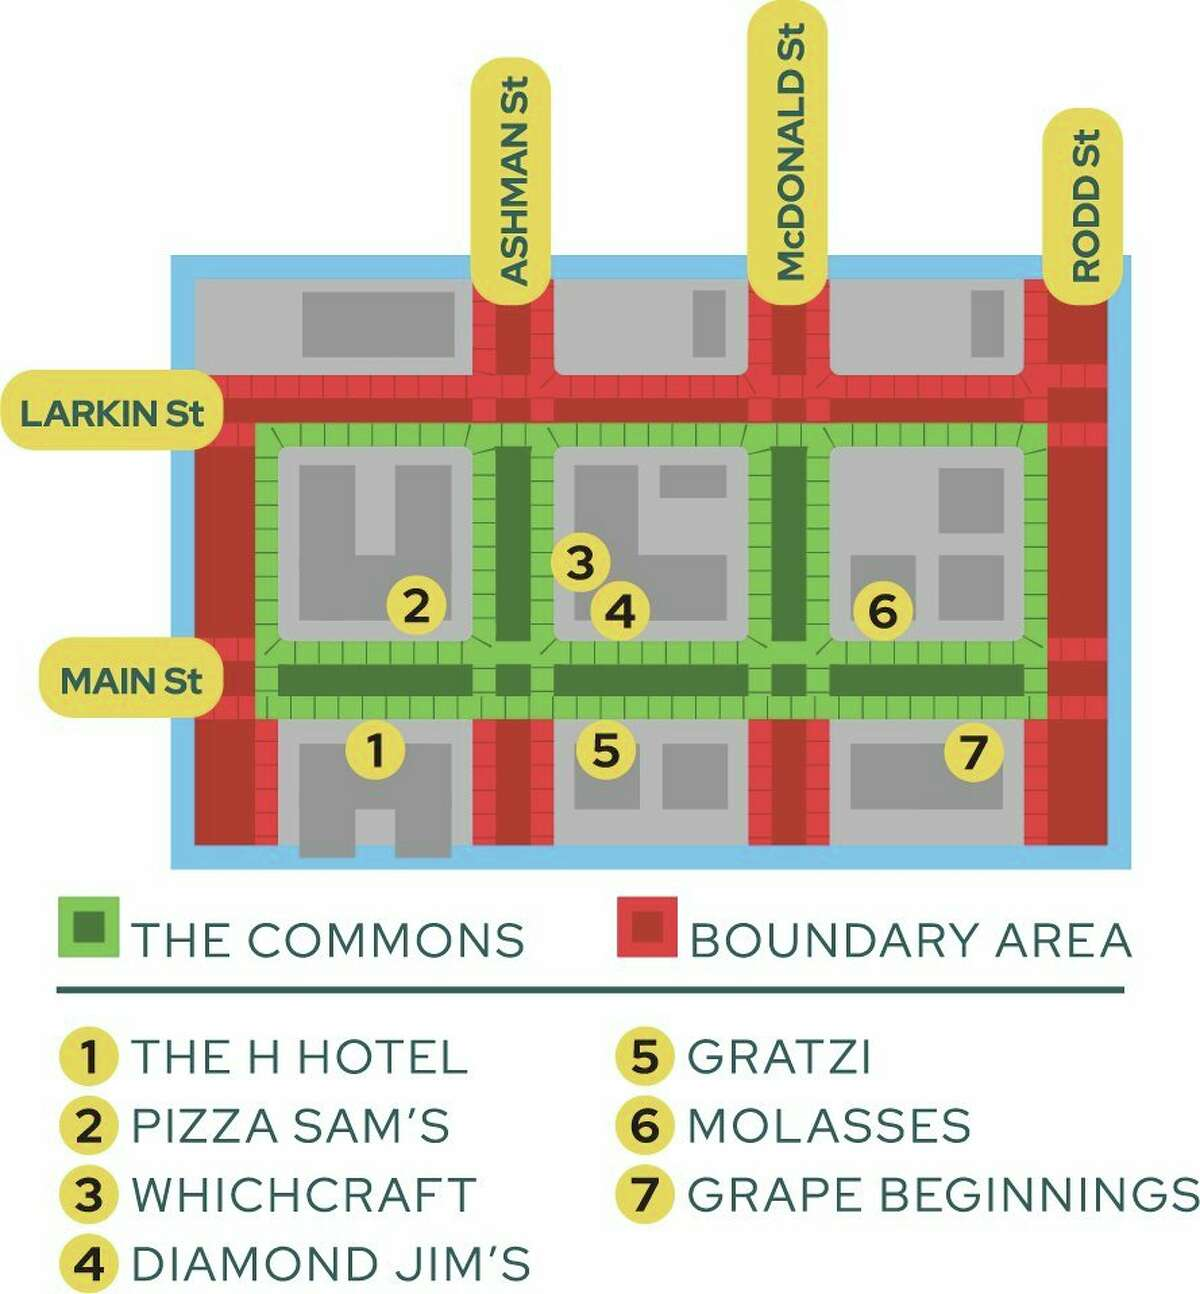 Downtown Midland's Commons area boundariesextend from Gordon Street to Rodd Street and Main Street to Larkin Street. (Image provided)